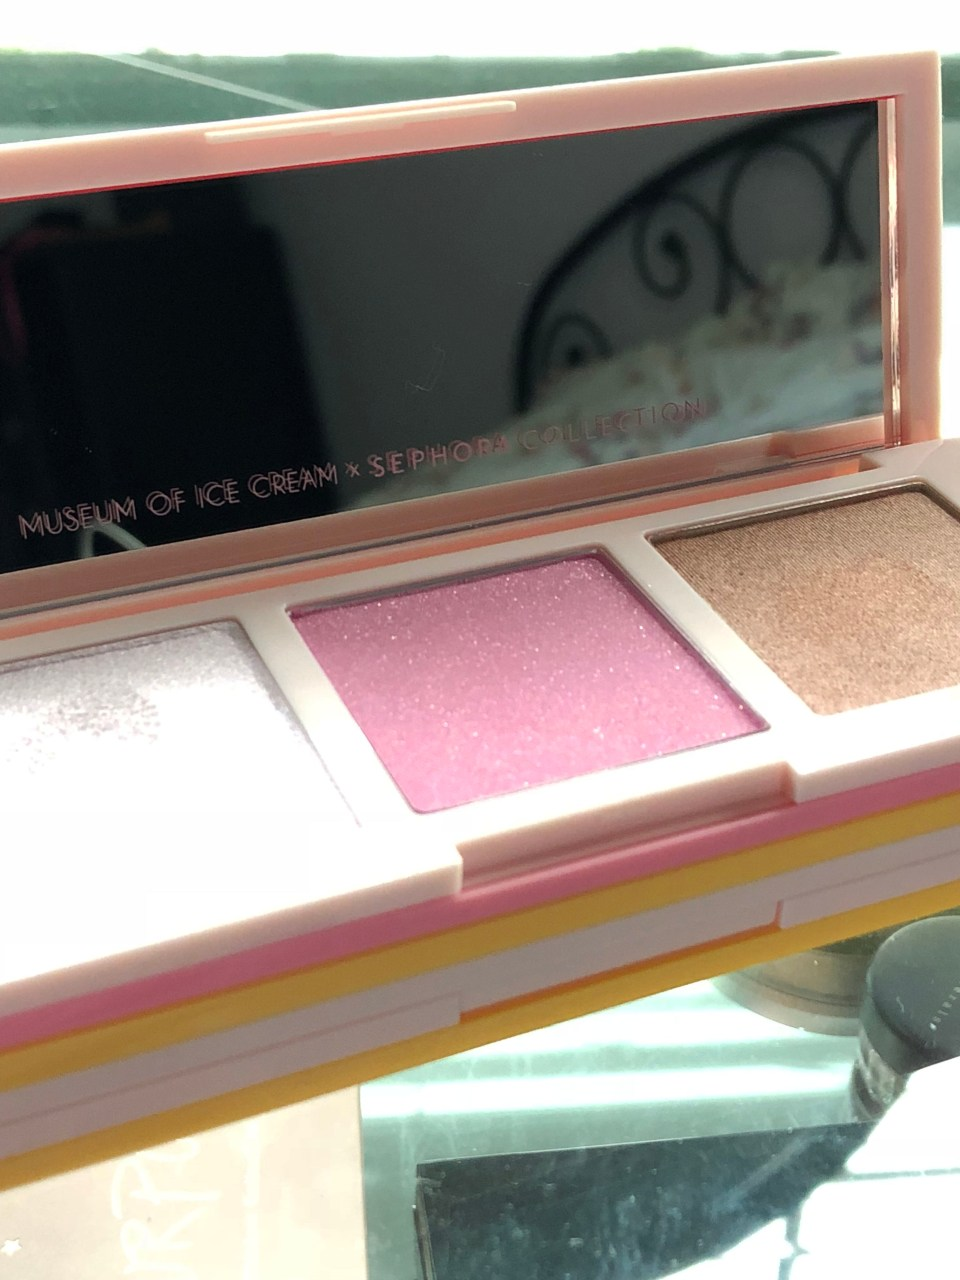 Museum of Ice Cream x Sephora - Sugar Wafer Palette 5